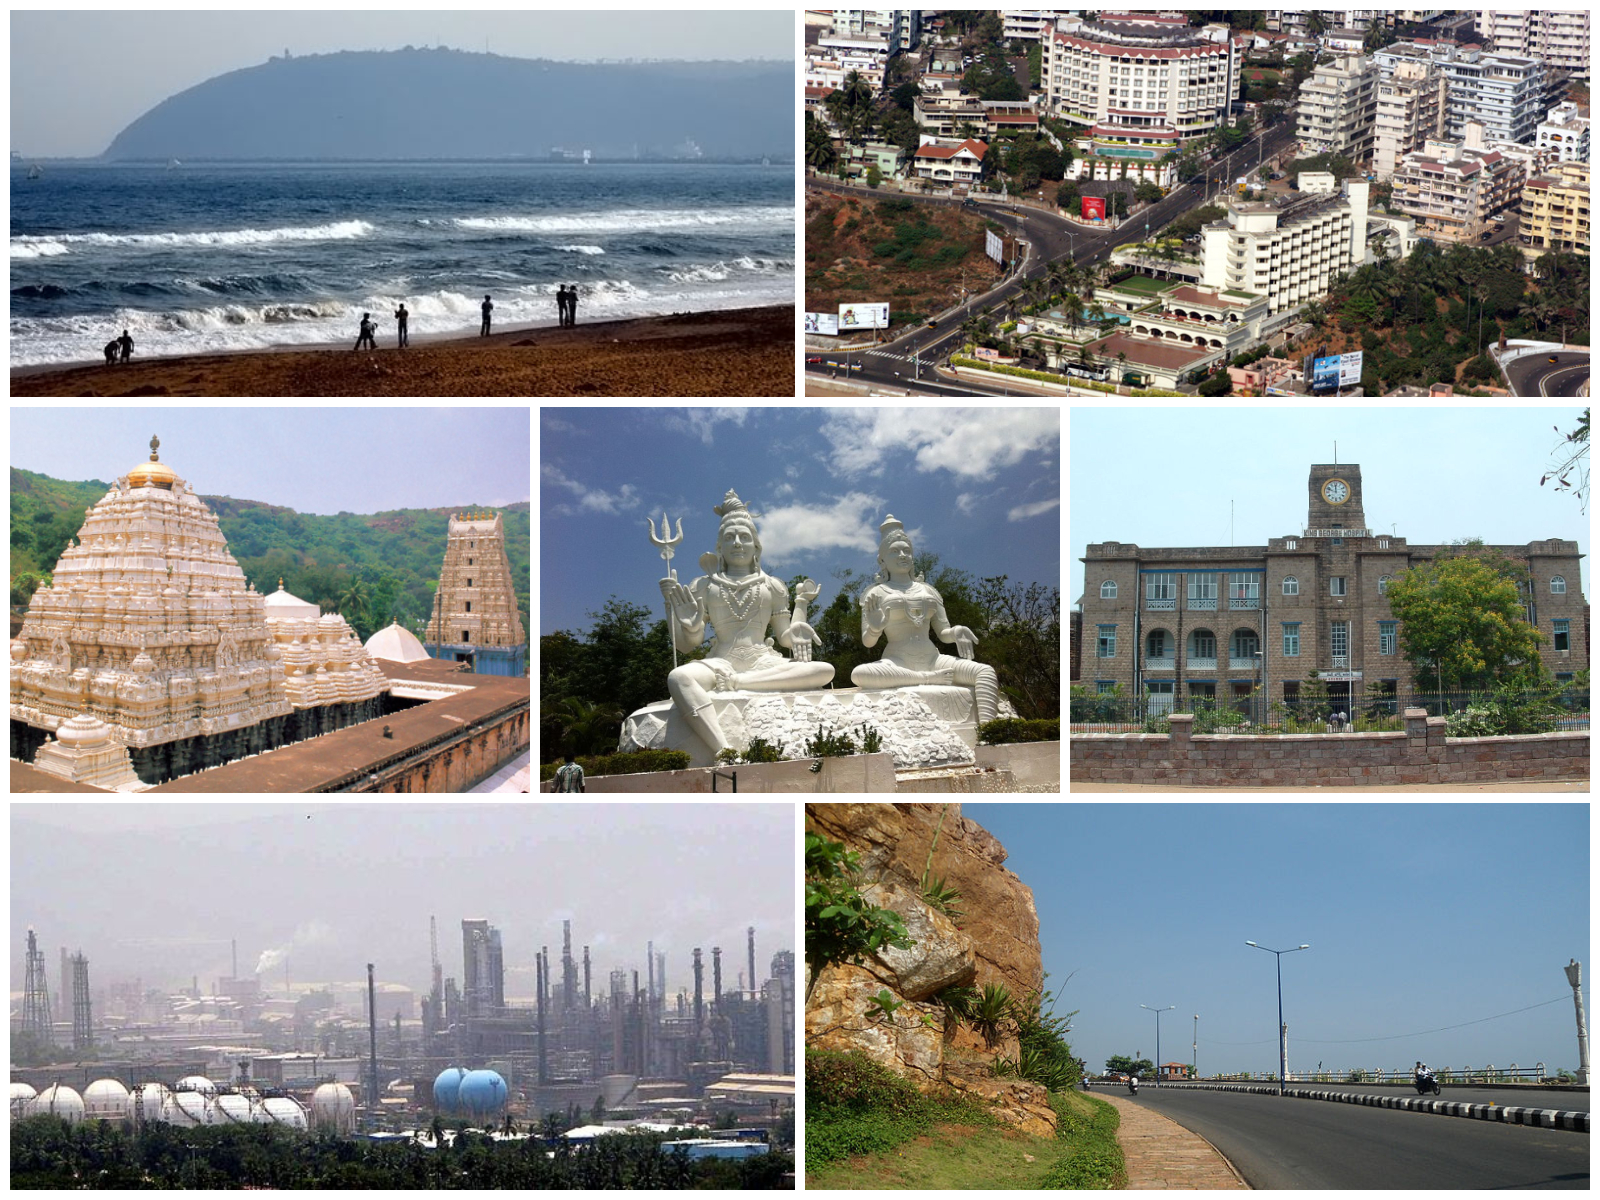 essay on favourite holiday spot vizag